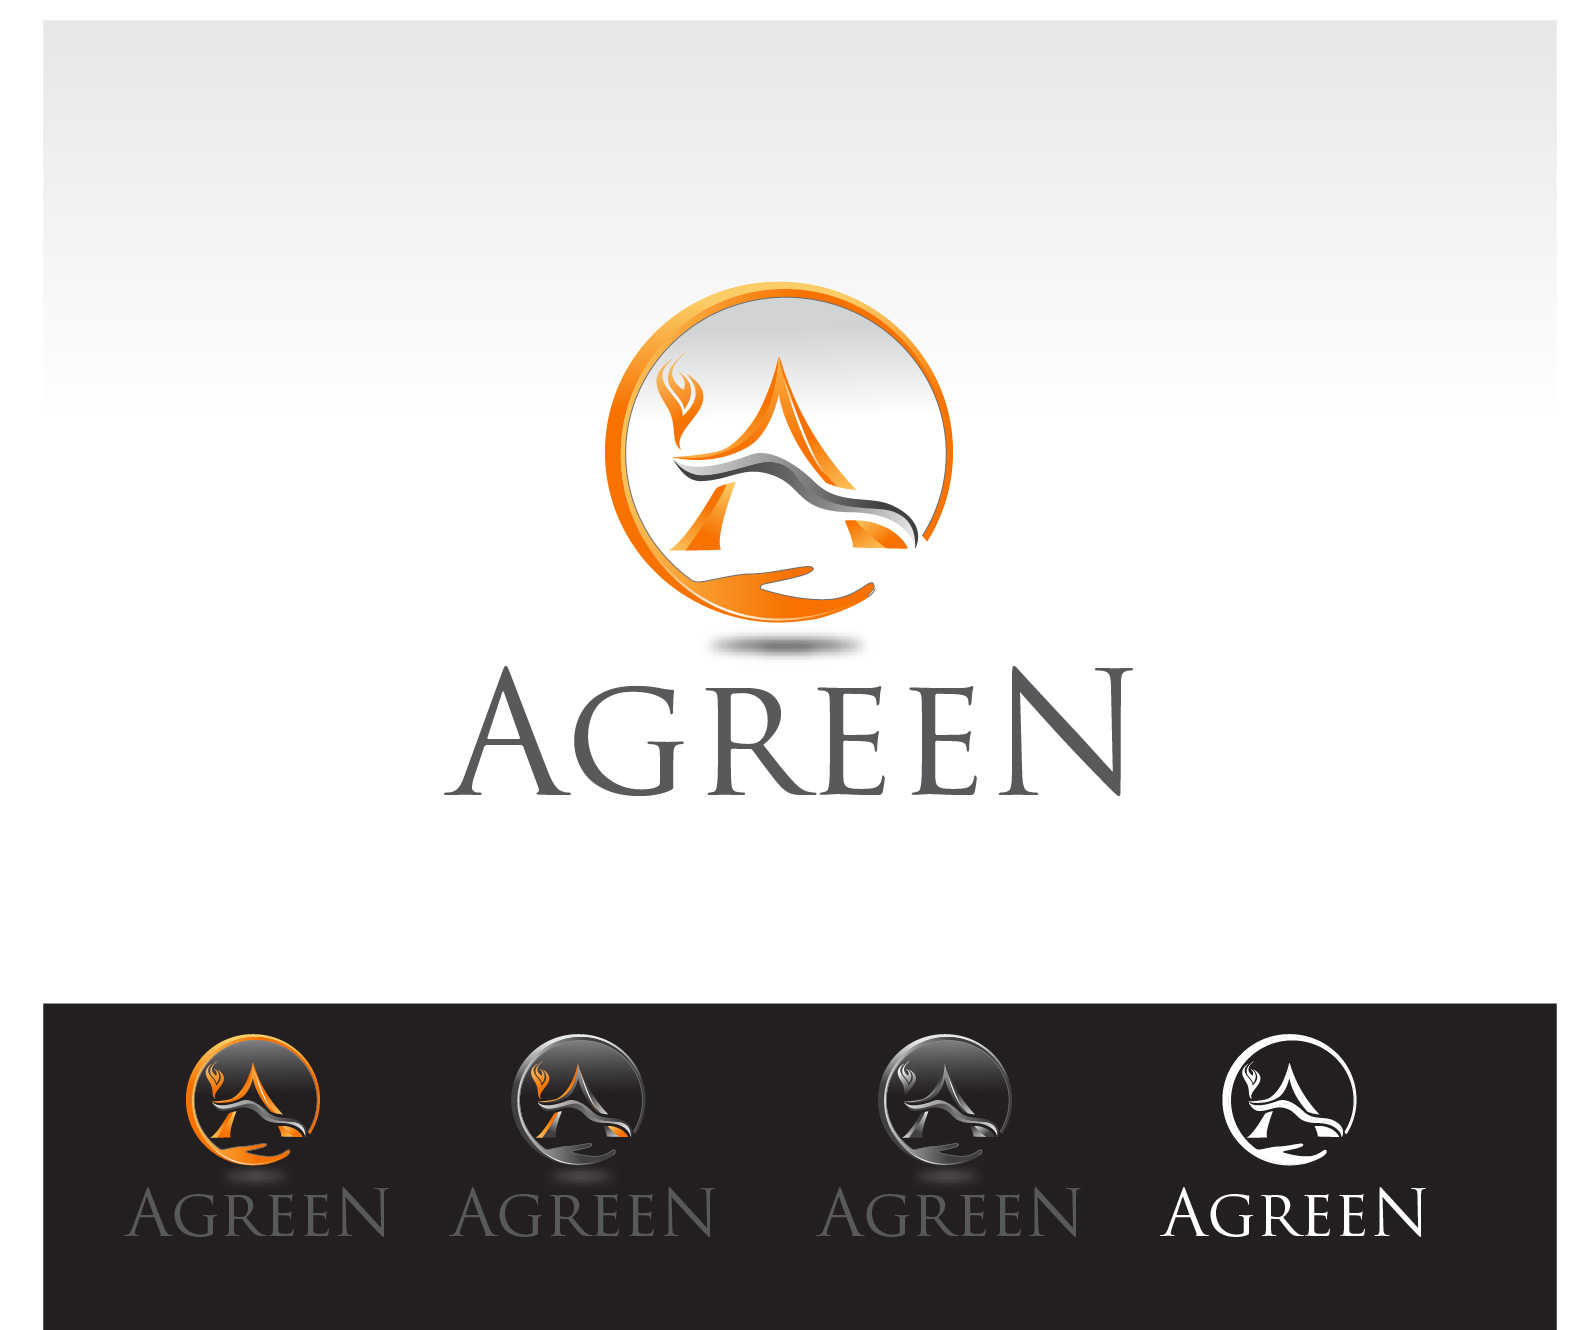 Logo Design by Robert Engi - Entry No. 112 in the Logo Design Contest Inspiring Logo Design for Agreen.